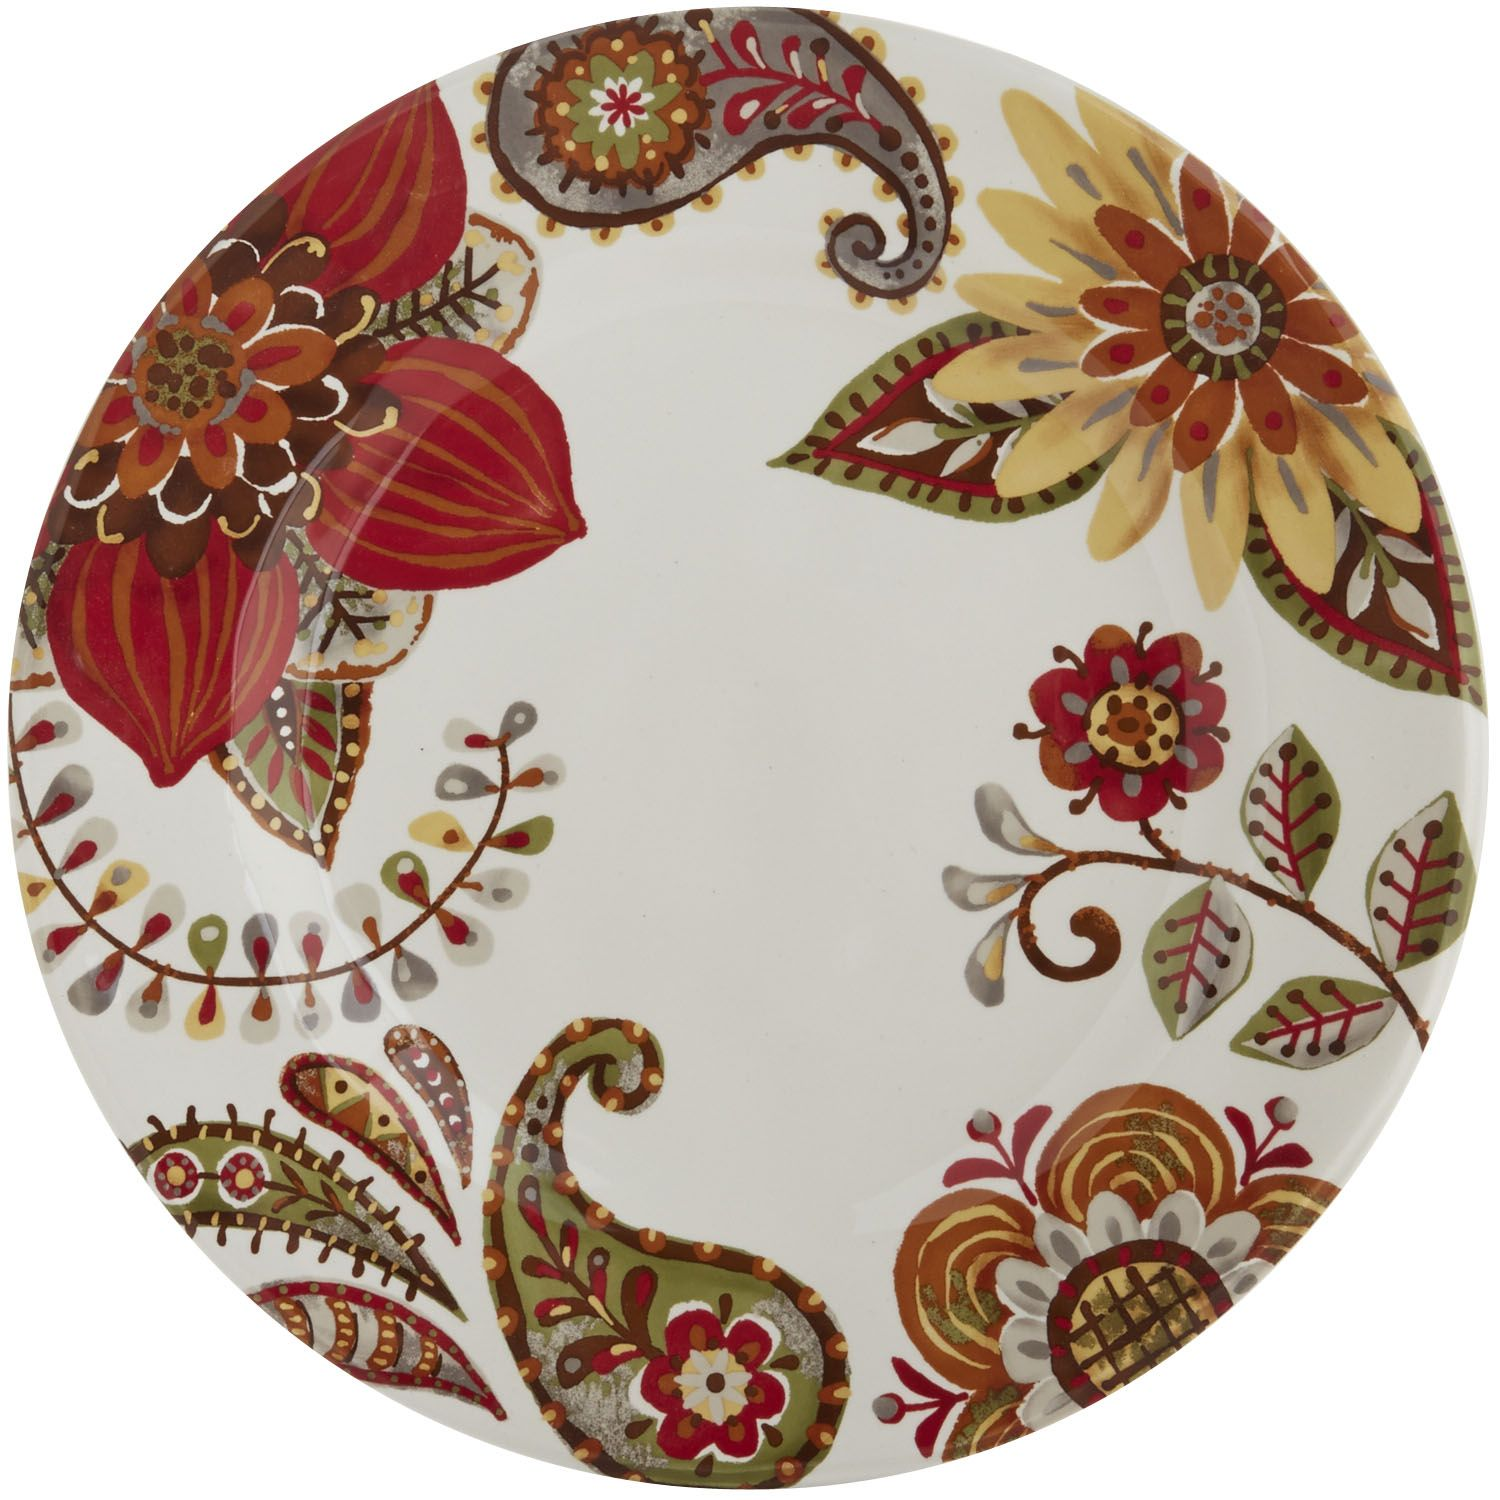 Multi-colored Baily Dinner Plate  sc 1 st  Pinterest & Multi-colored Baily Dinner Plate | *Dinnerware u003e Plates* | Pinterest ...